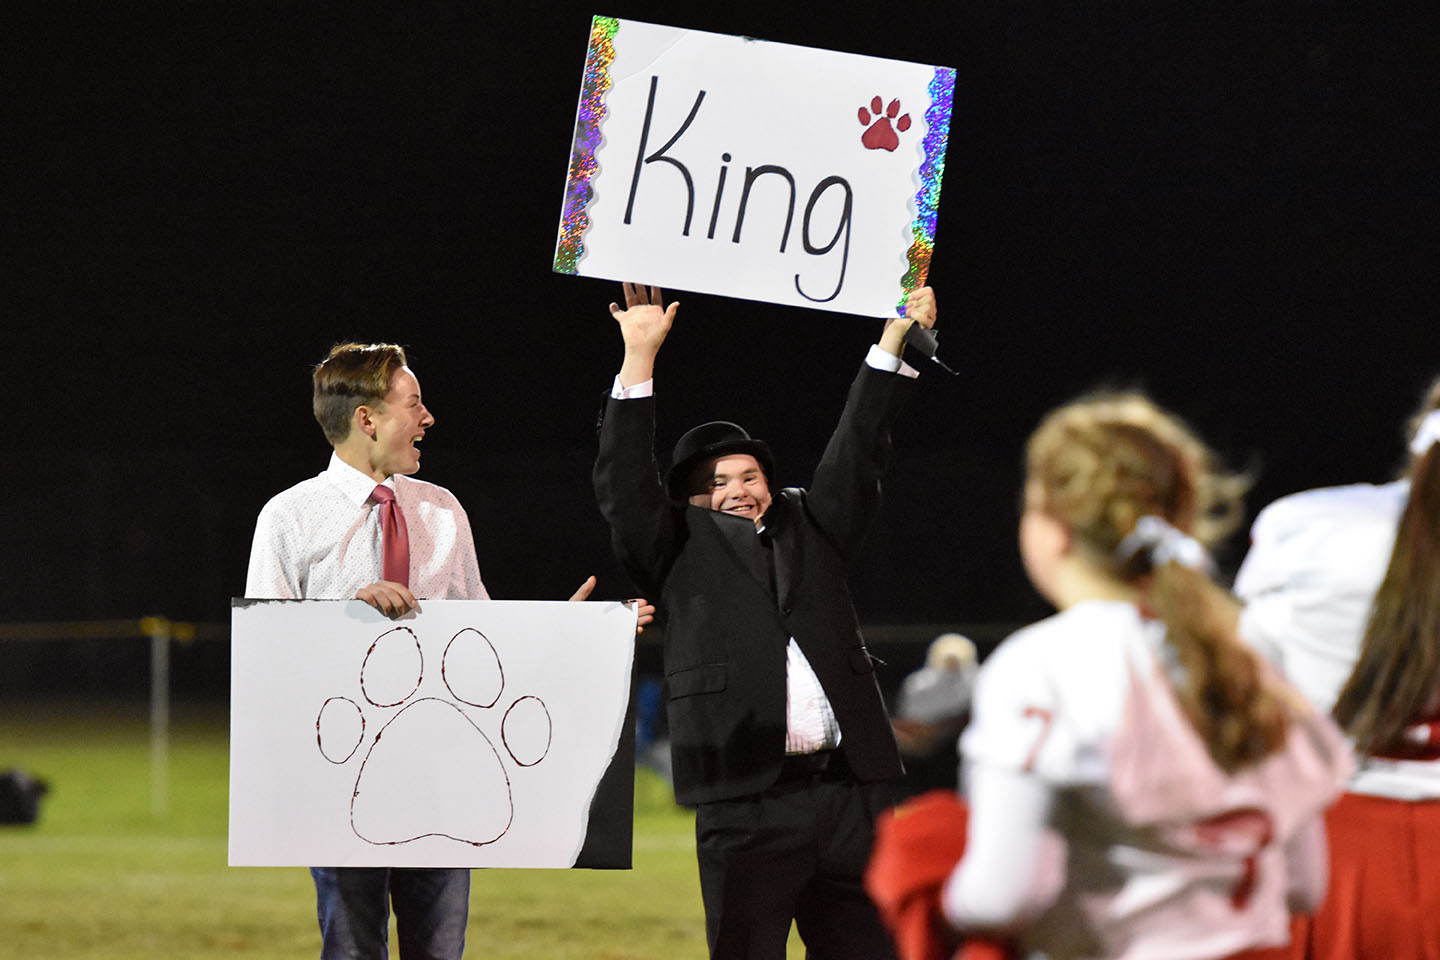 Eliyah+Allen+proudly+holds+up+his+sign+as+the+new+Homecoming+King.